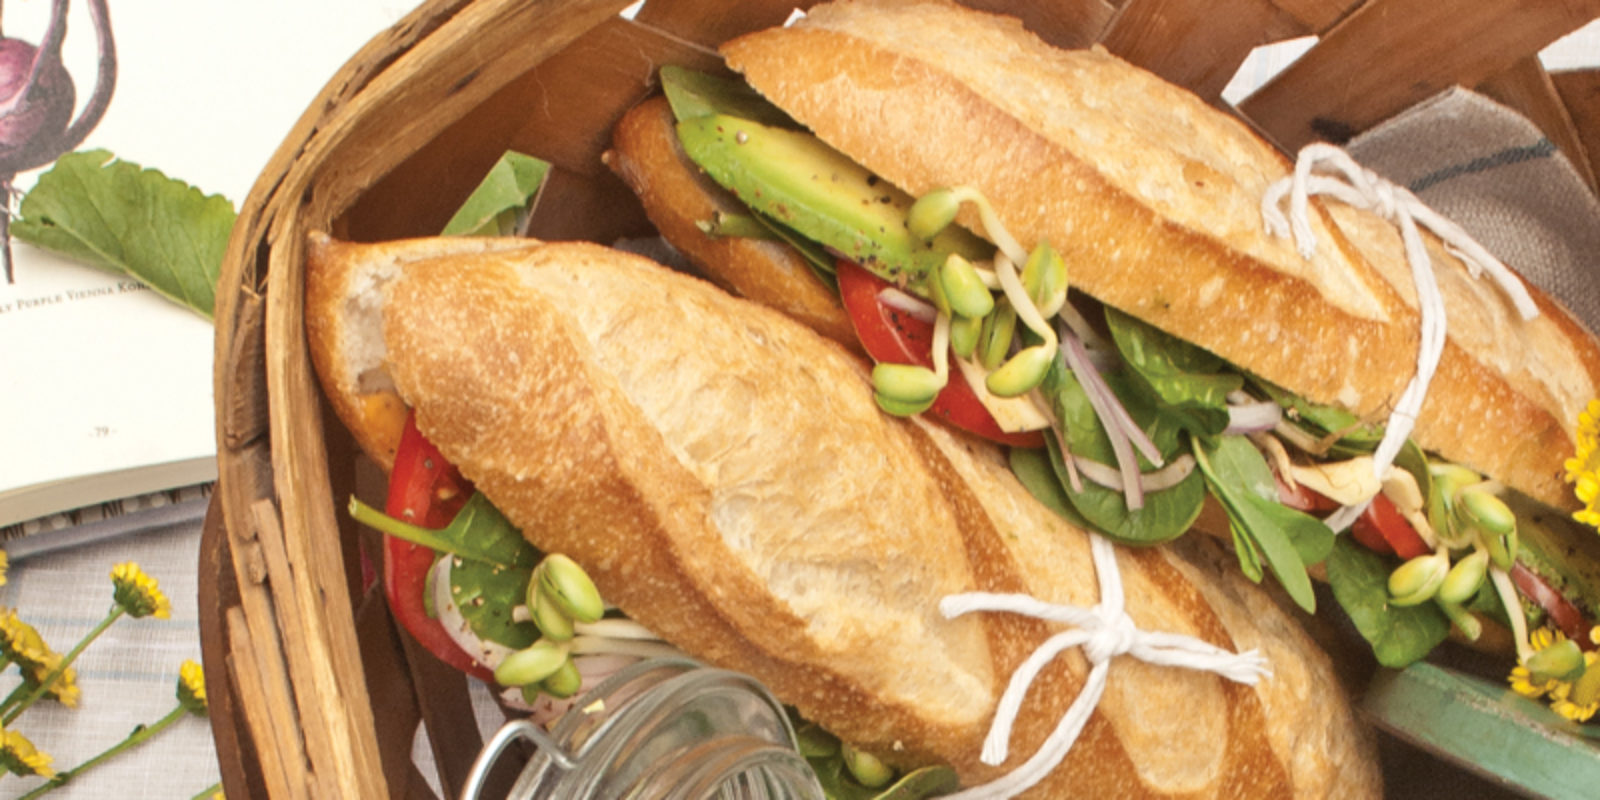 Baguette sandwiches in a picnic basket